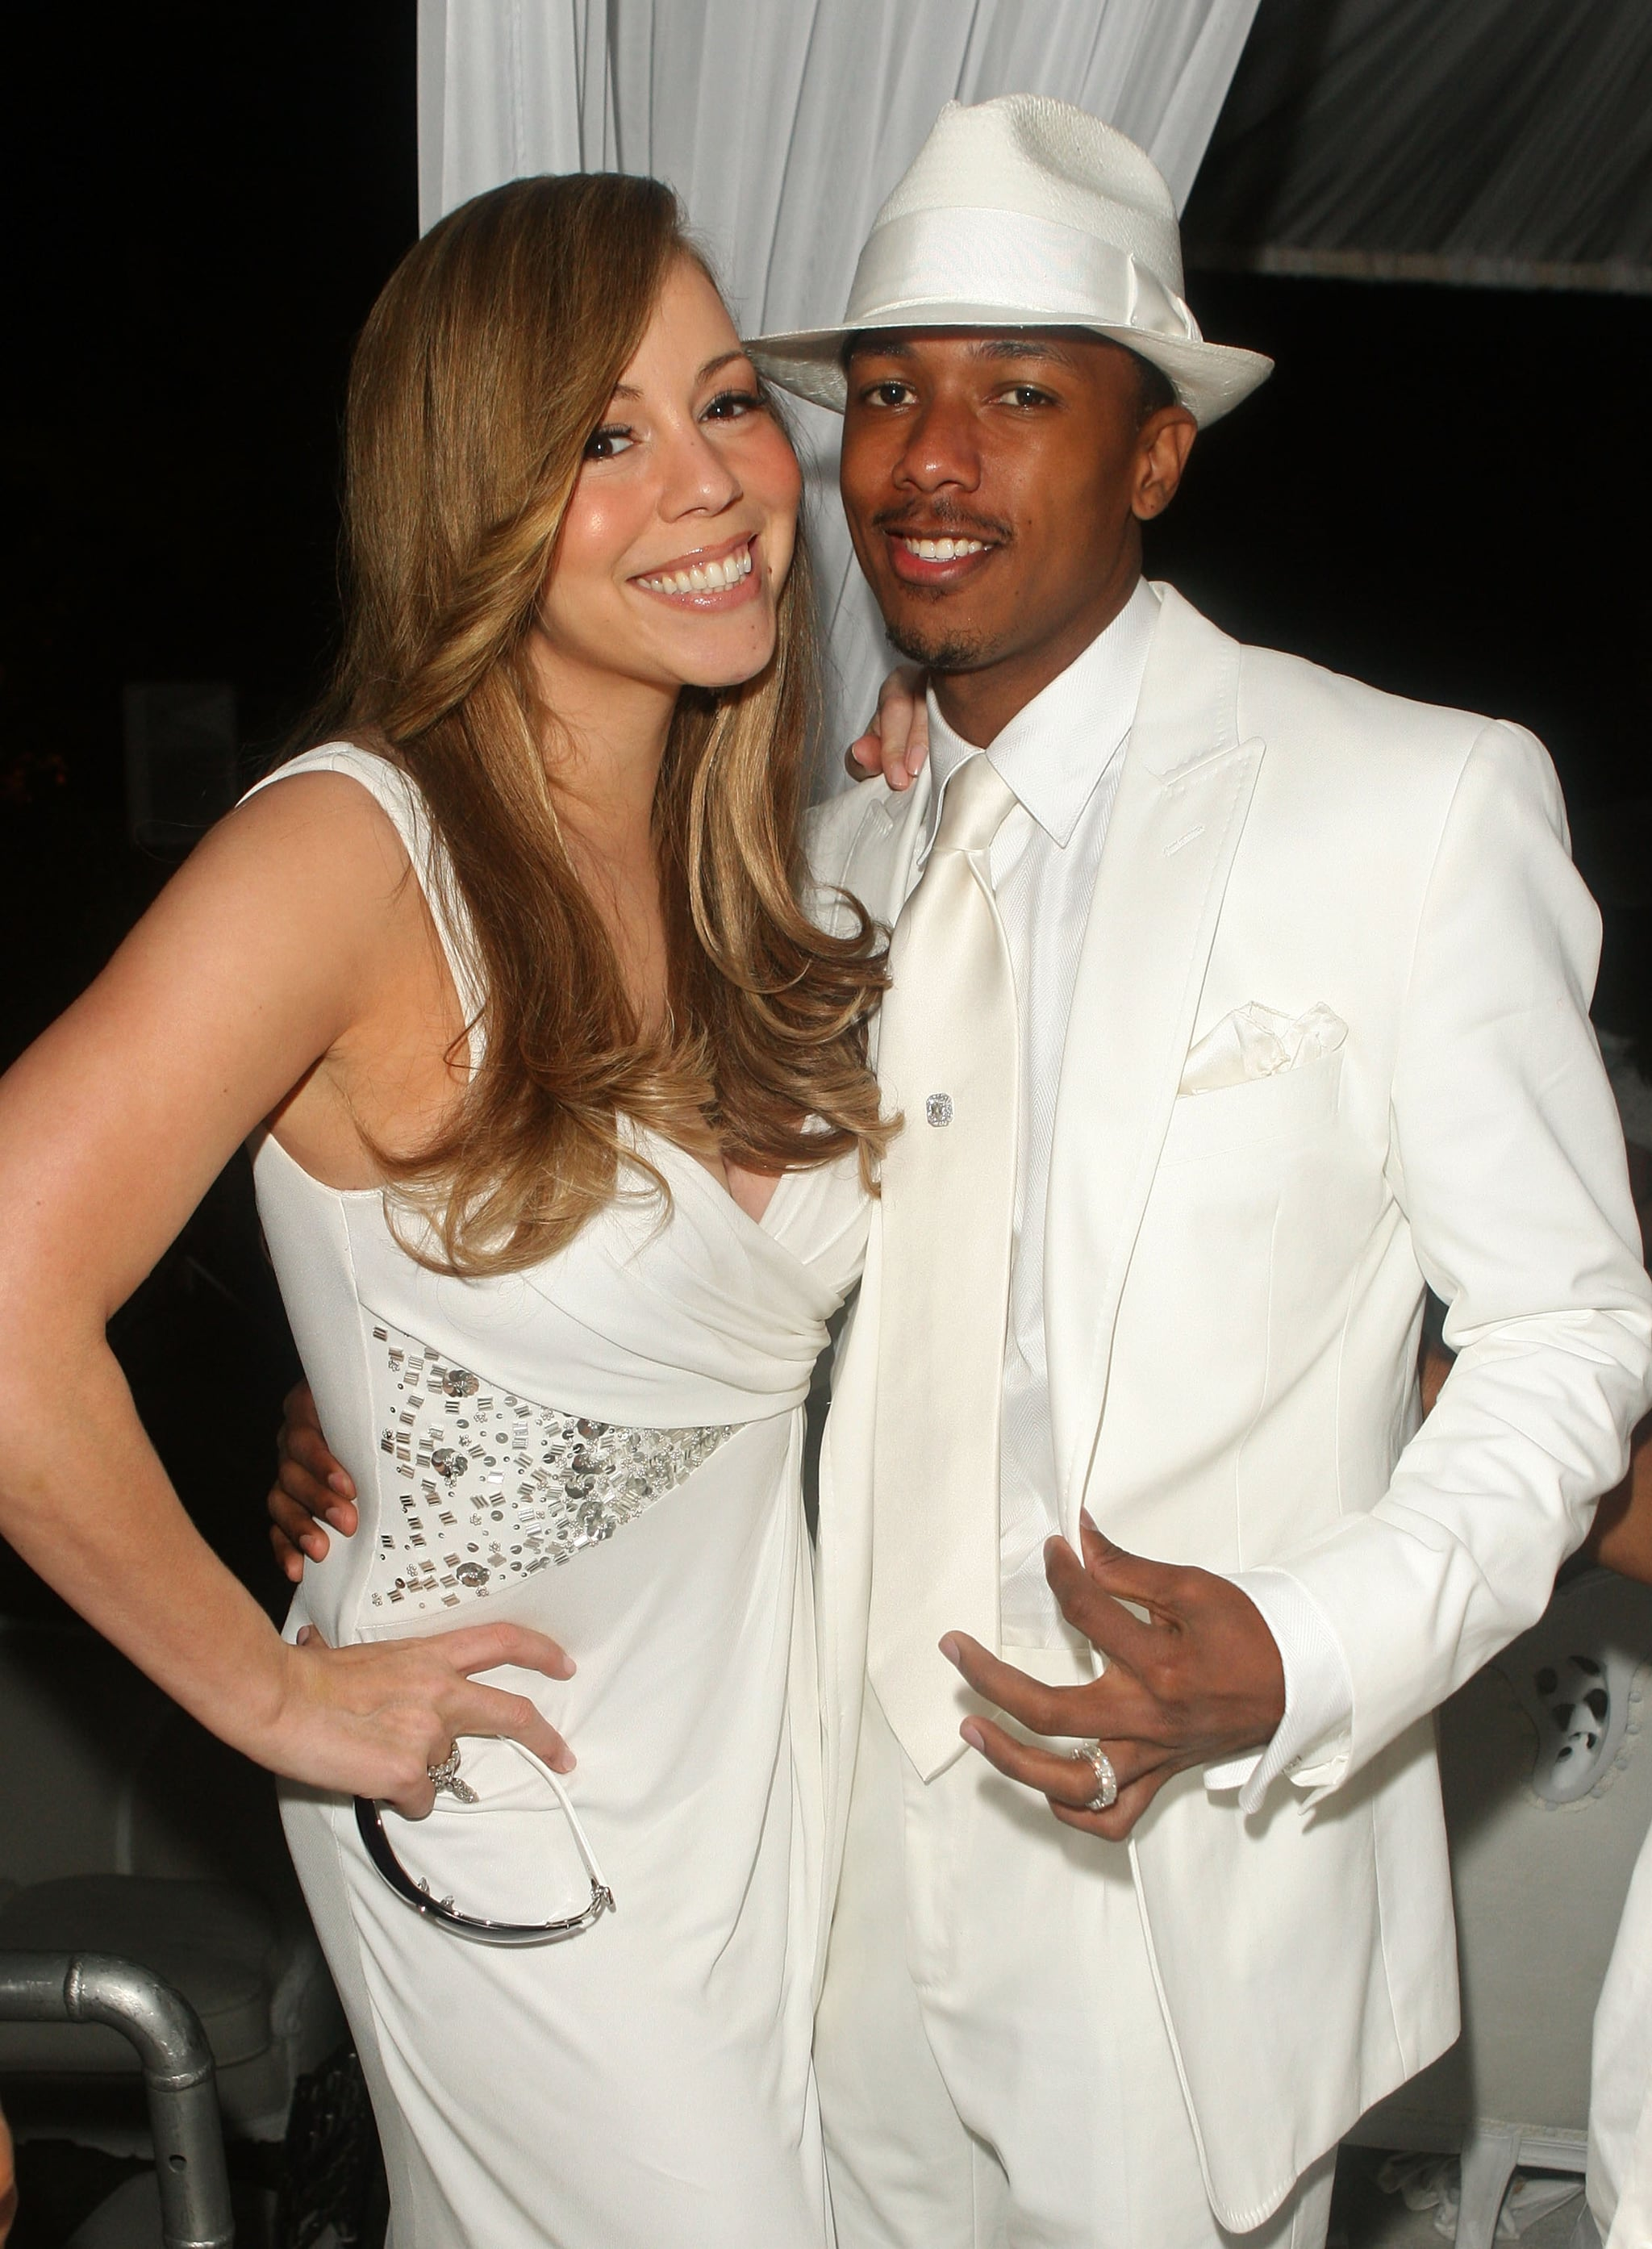 Mariah Carey and Nick Cannon were decked out in matching ...